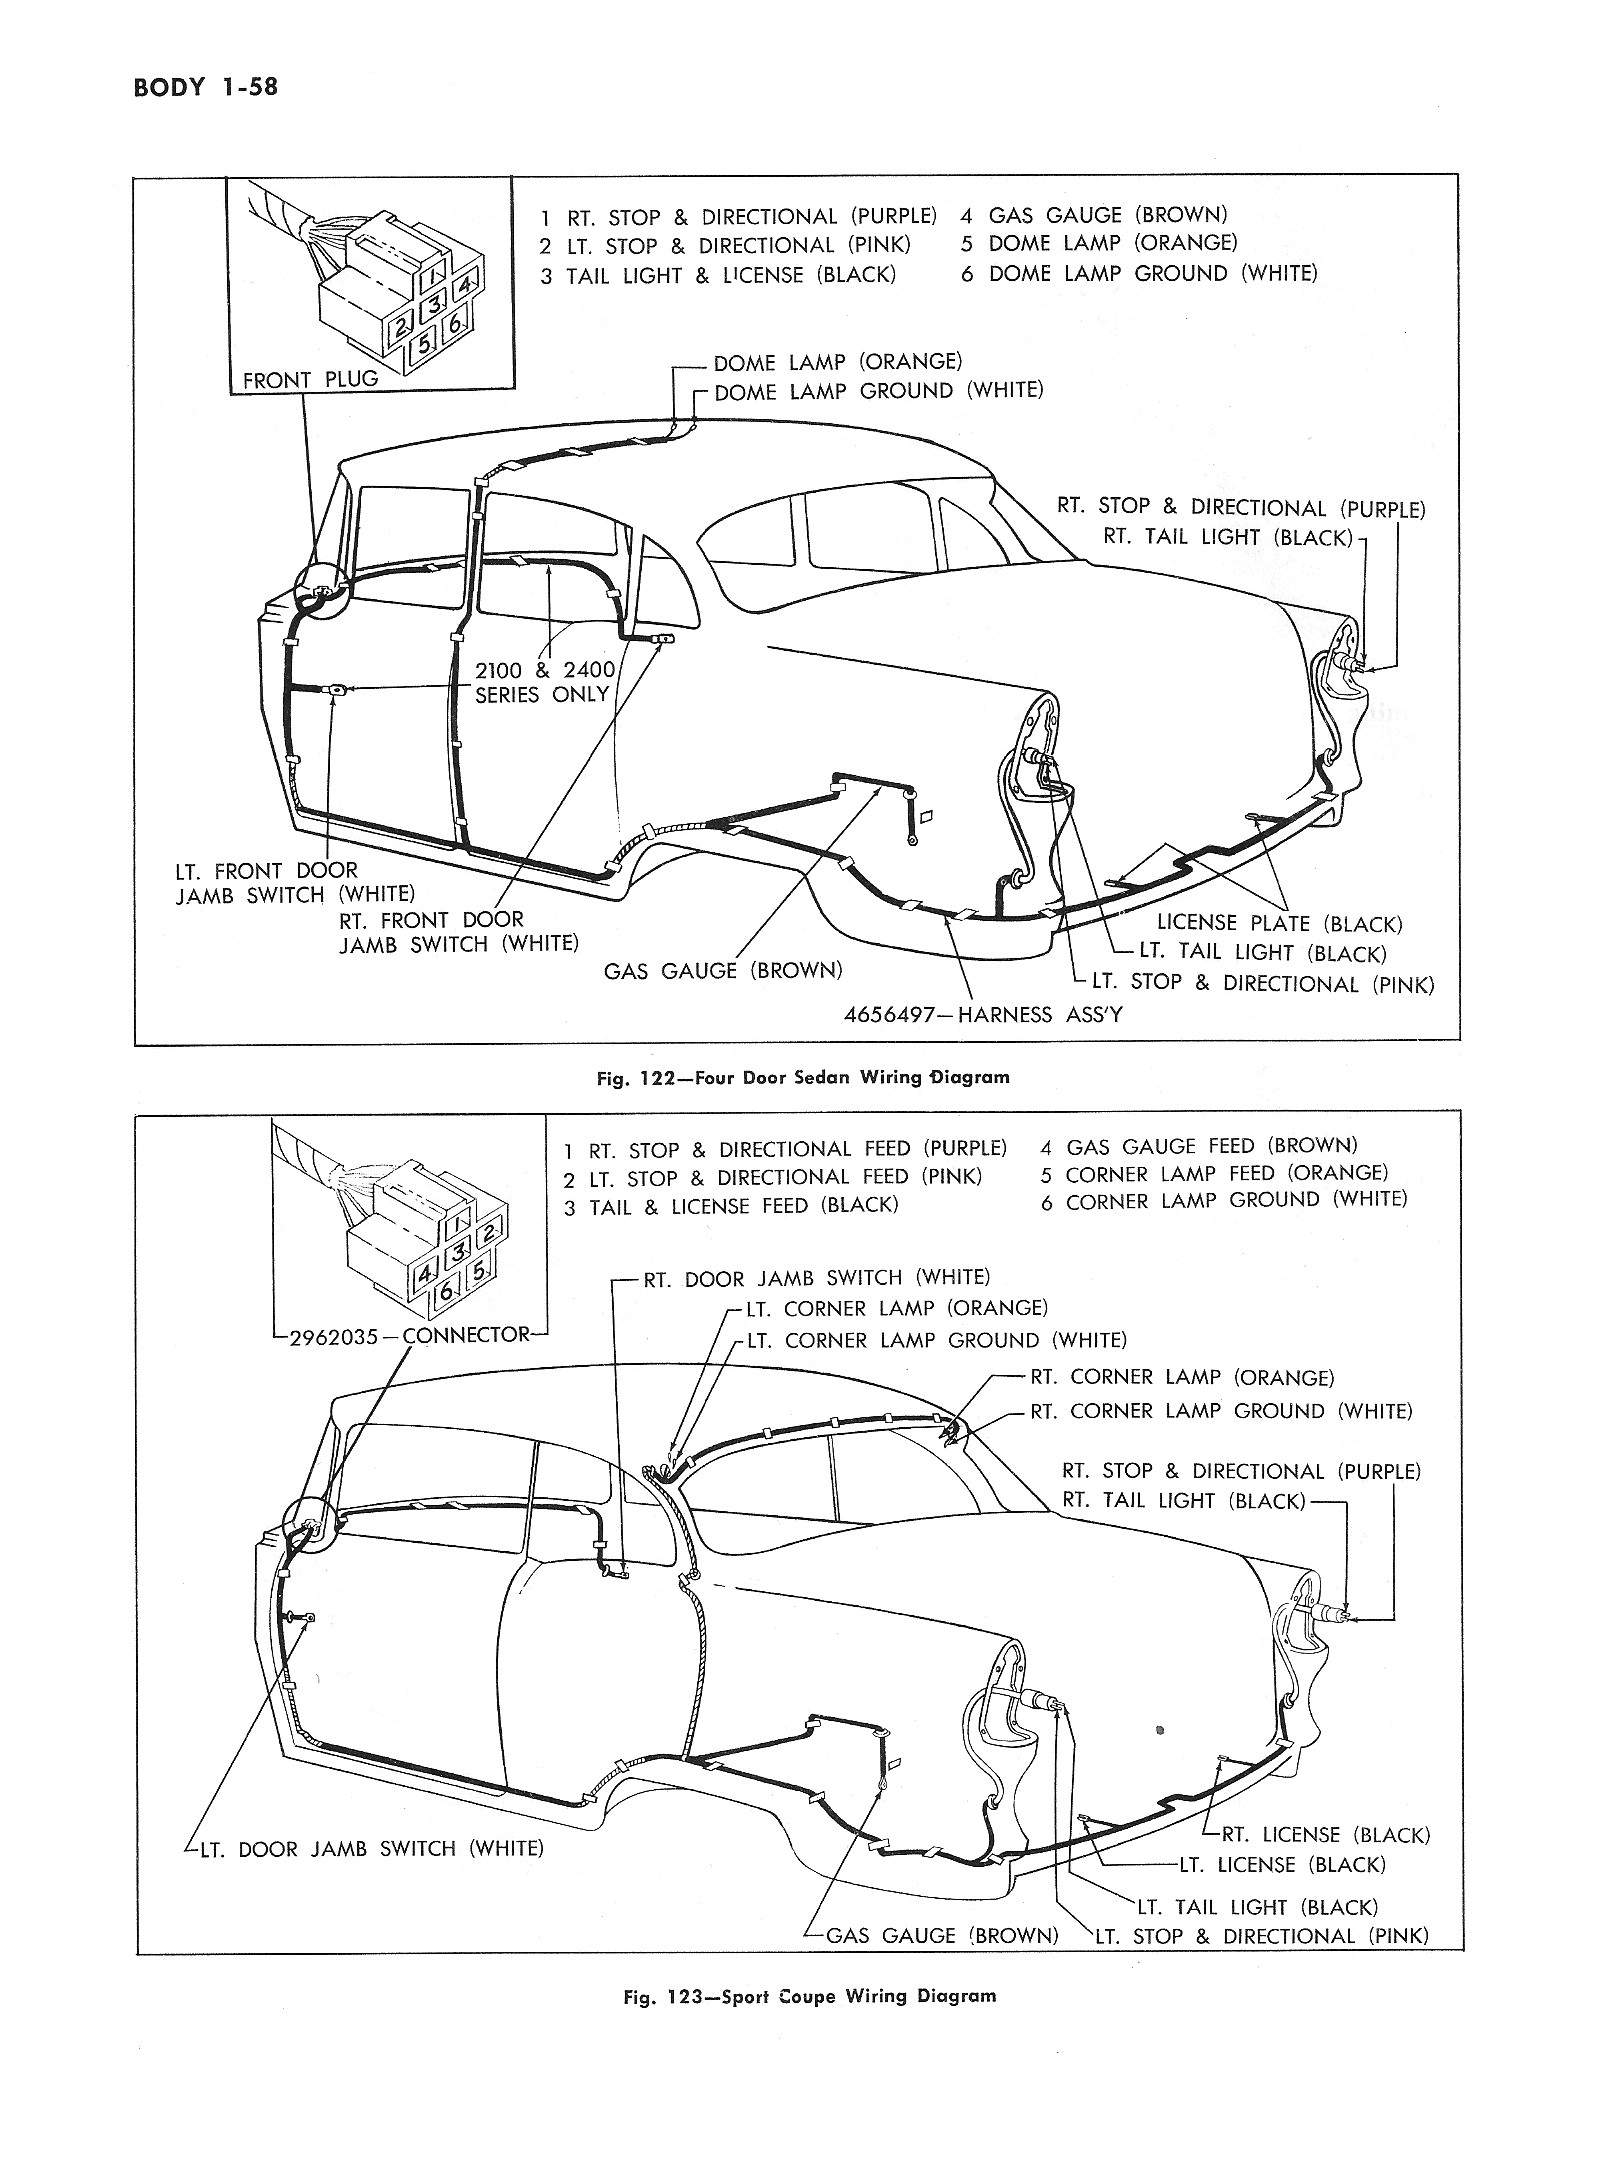 55csm0158 wiring diagram 55 chevy belair 2 door readingrat net 55 chevy wiring harness at soozxer.org